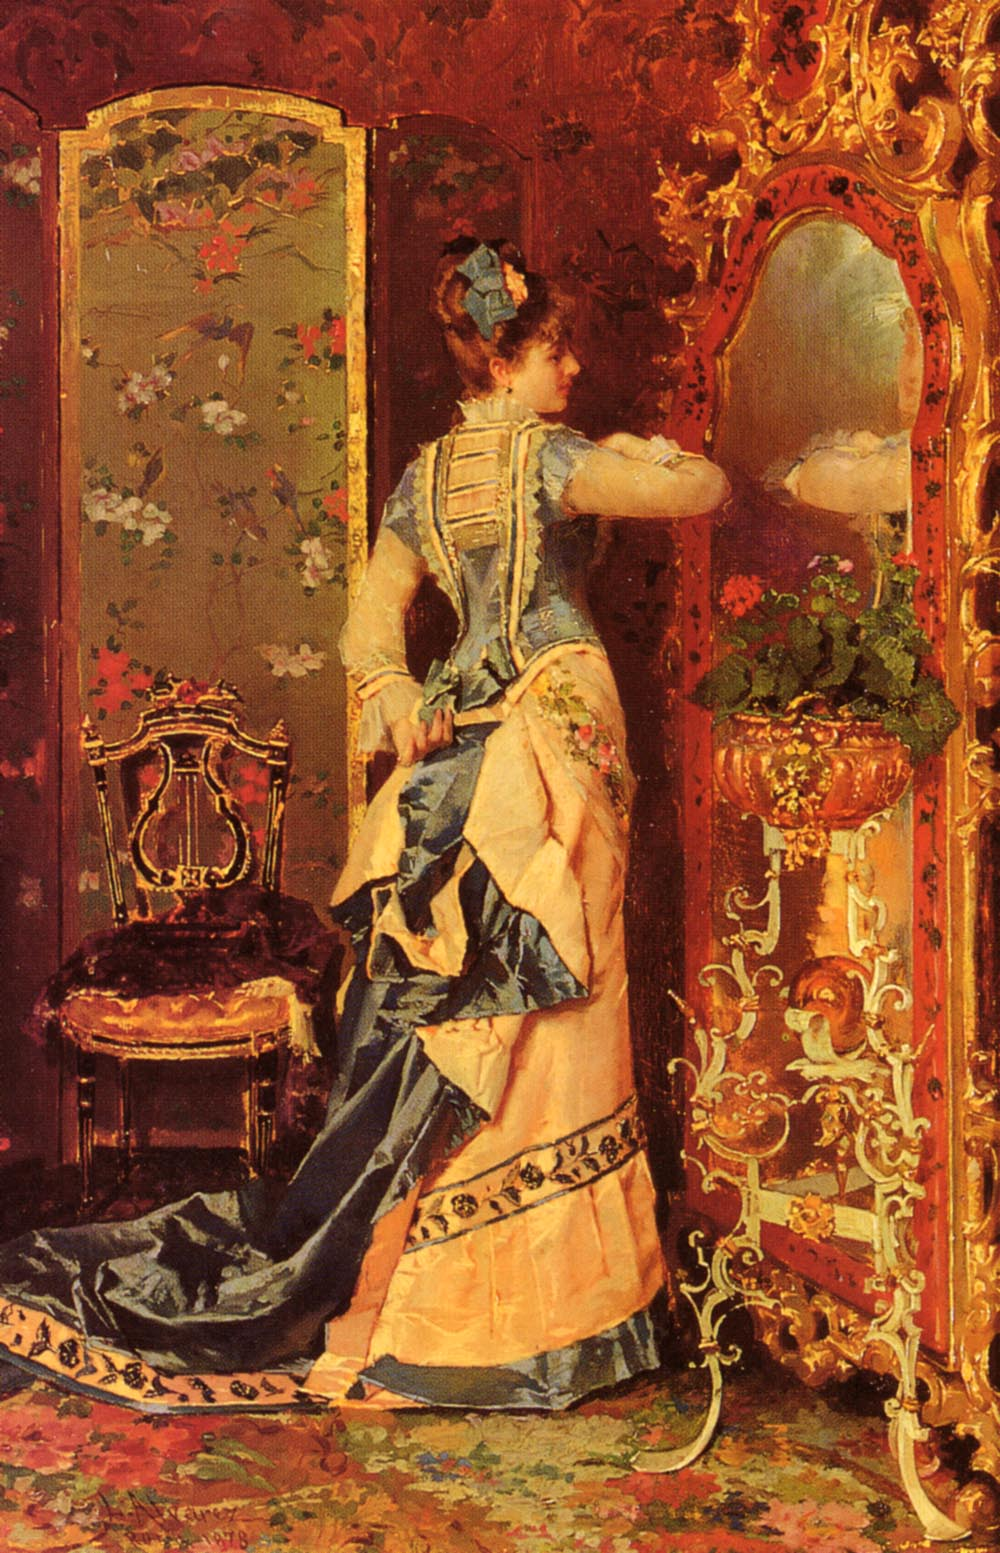 https://i2.wp.com/www.sightswithin.com/Luis.Alvarez.Catala/Woman_Before_a_Mirror.jpg